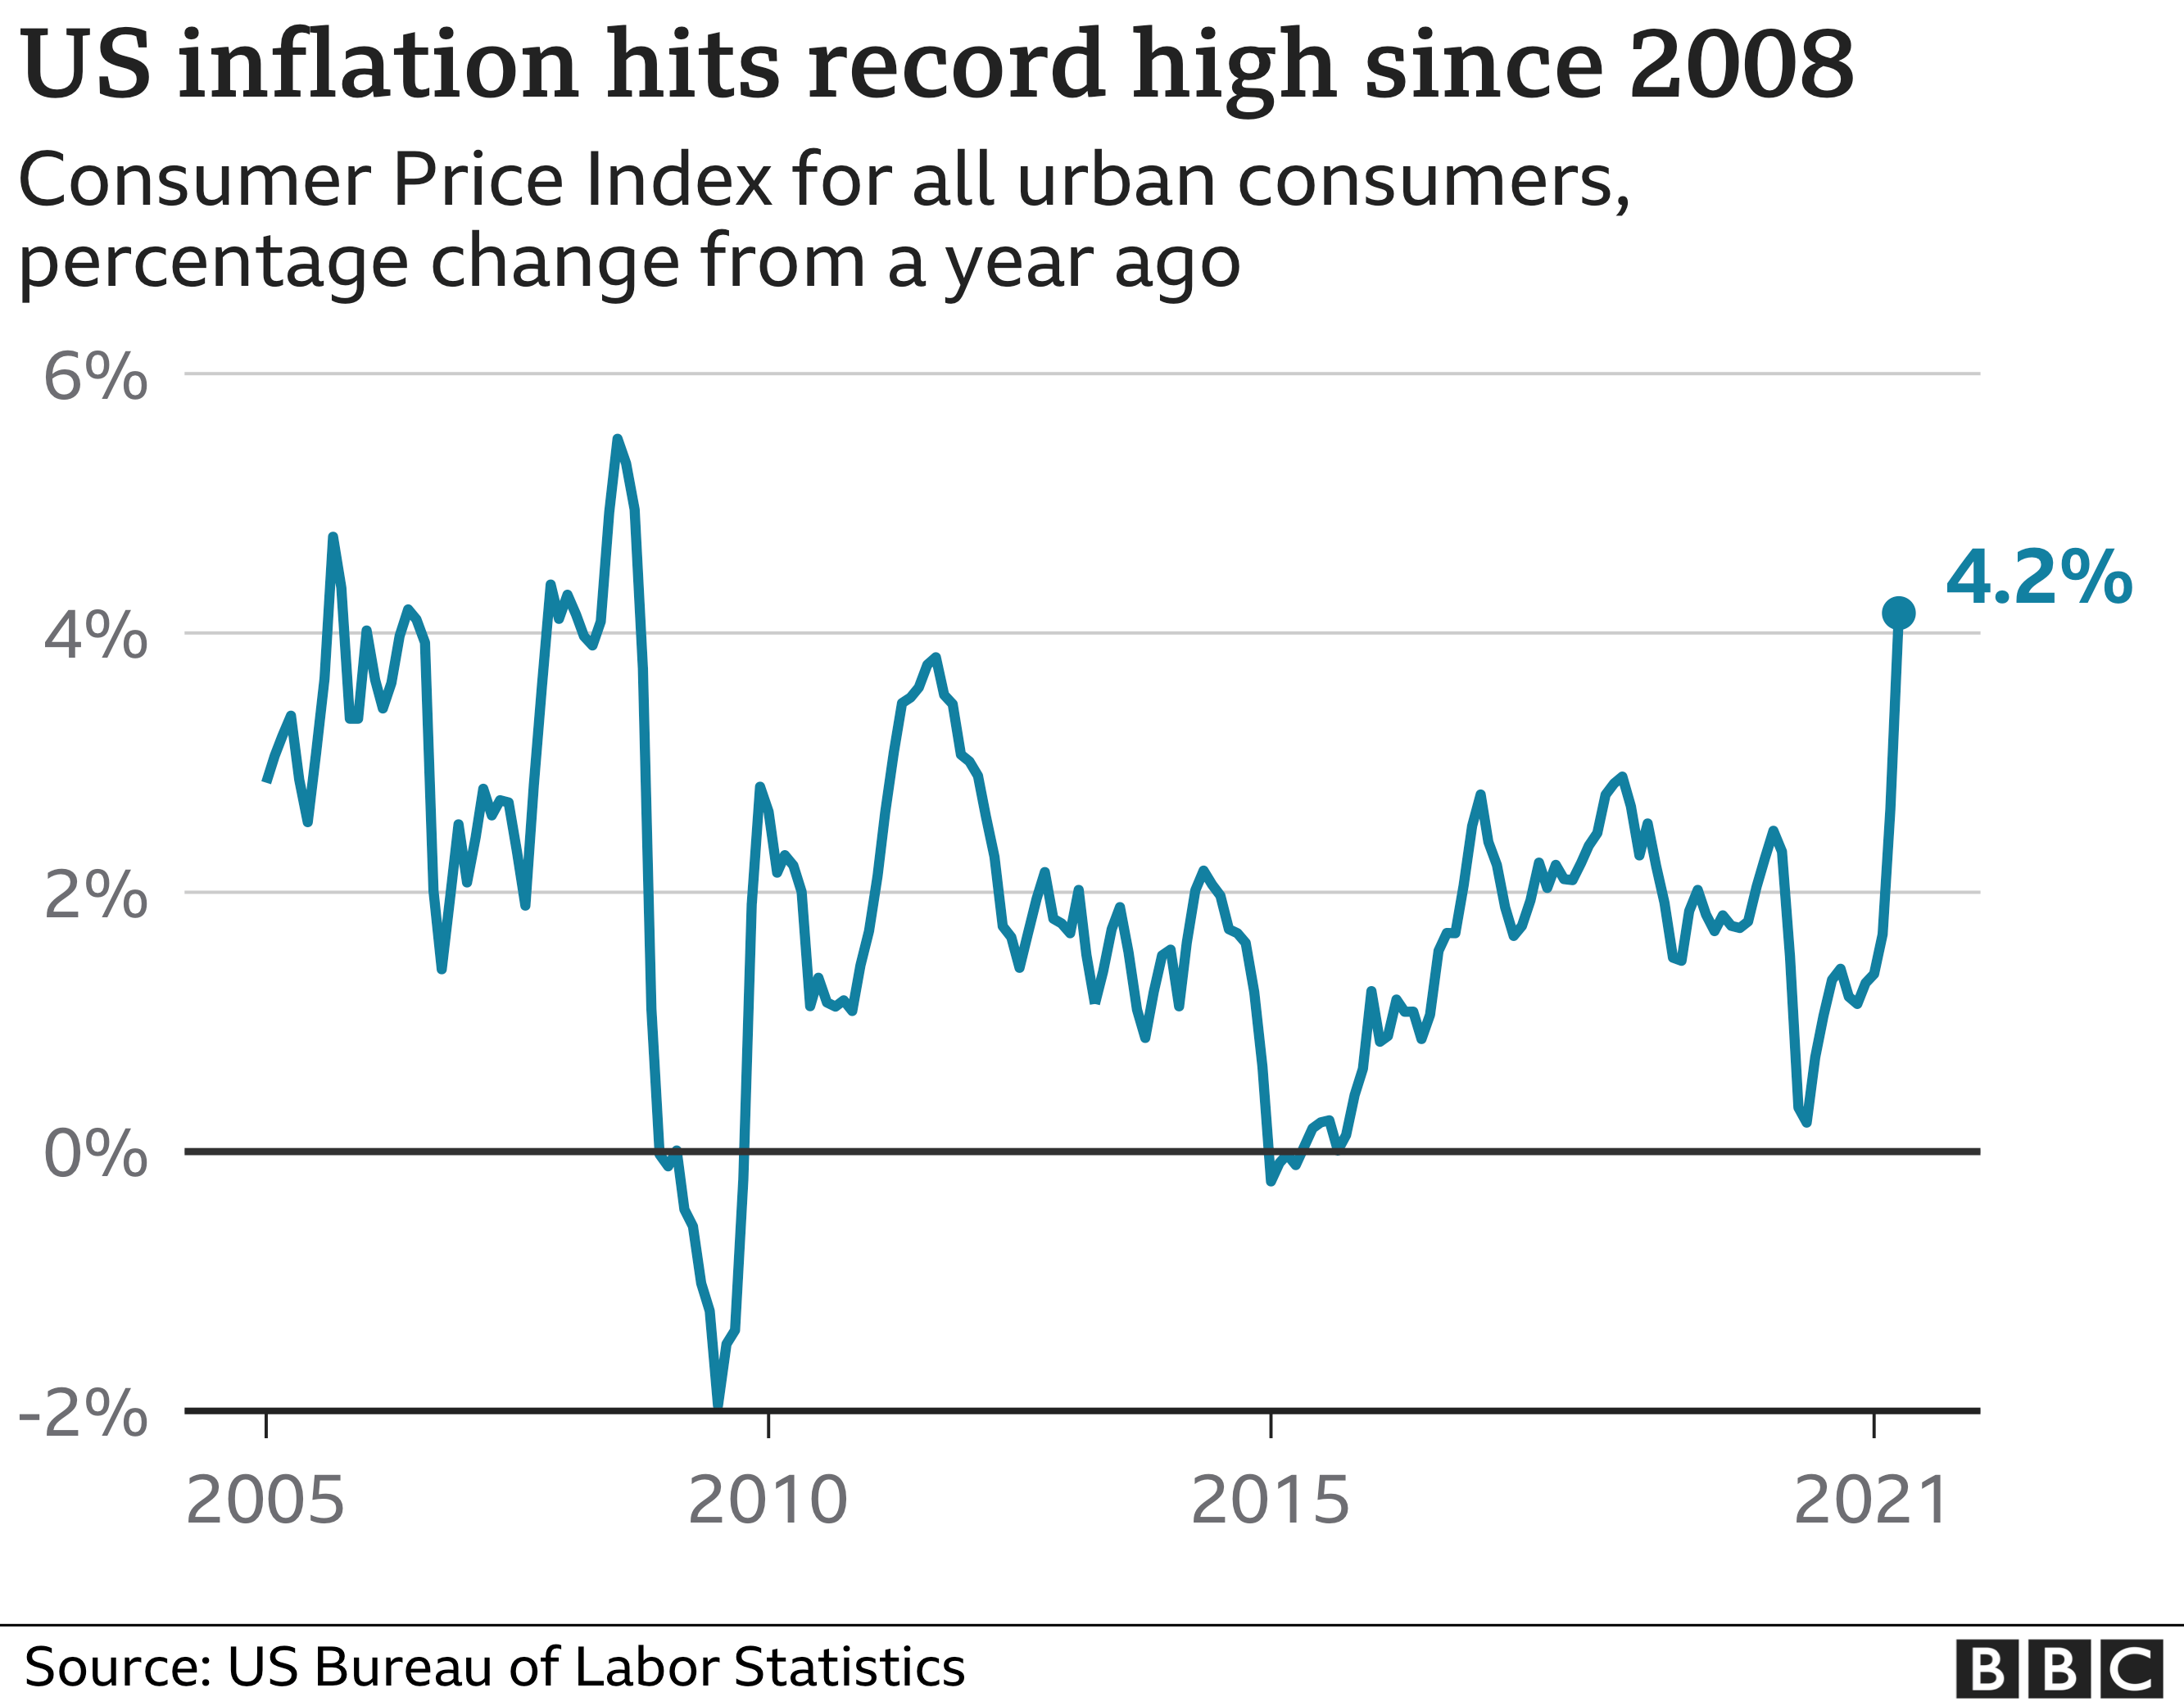 US inflation hits record high since 2008